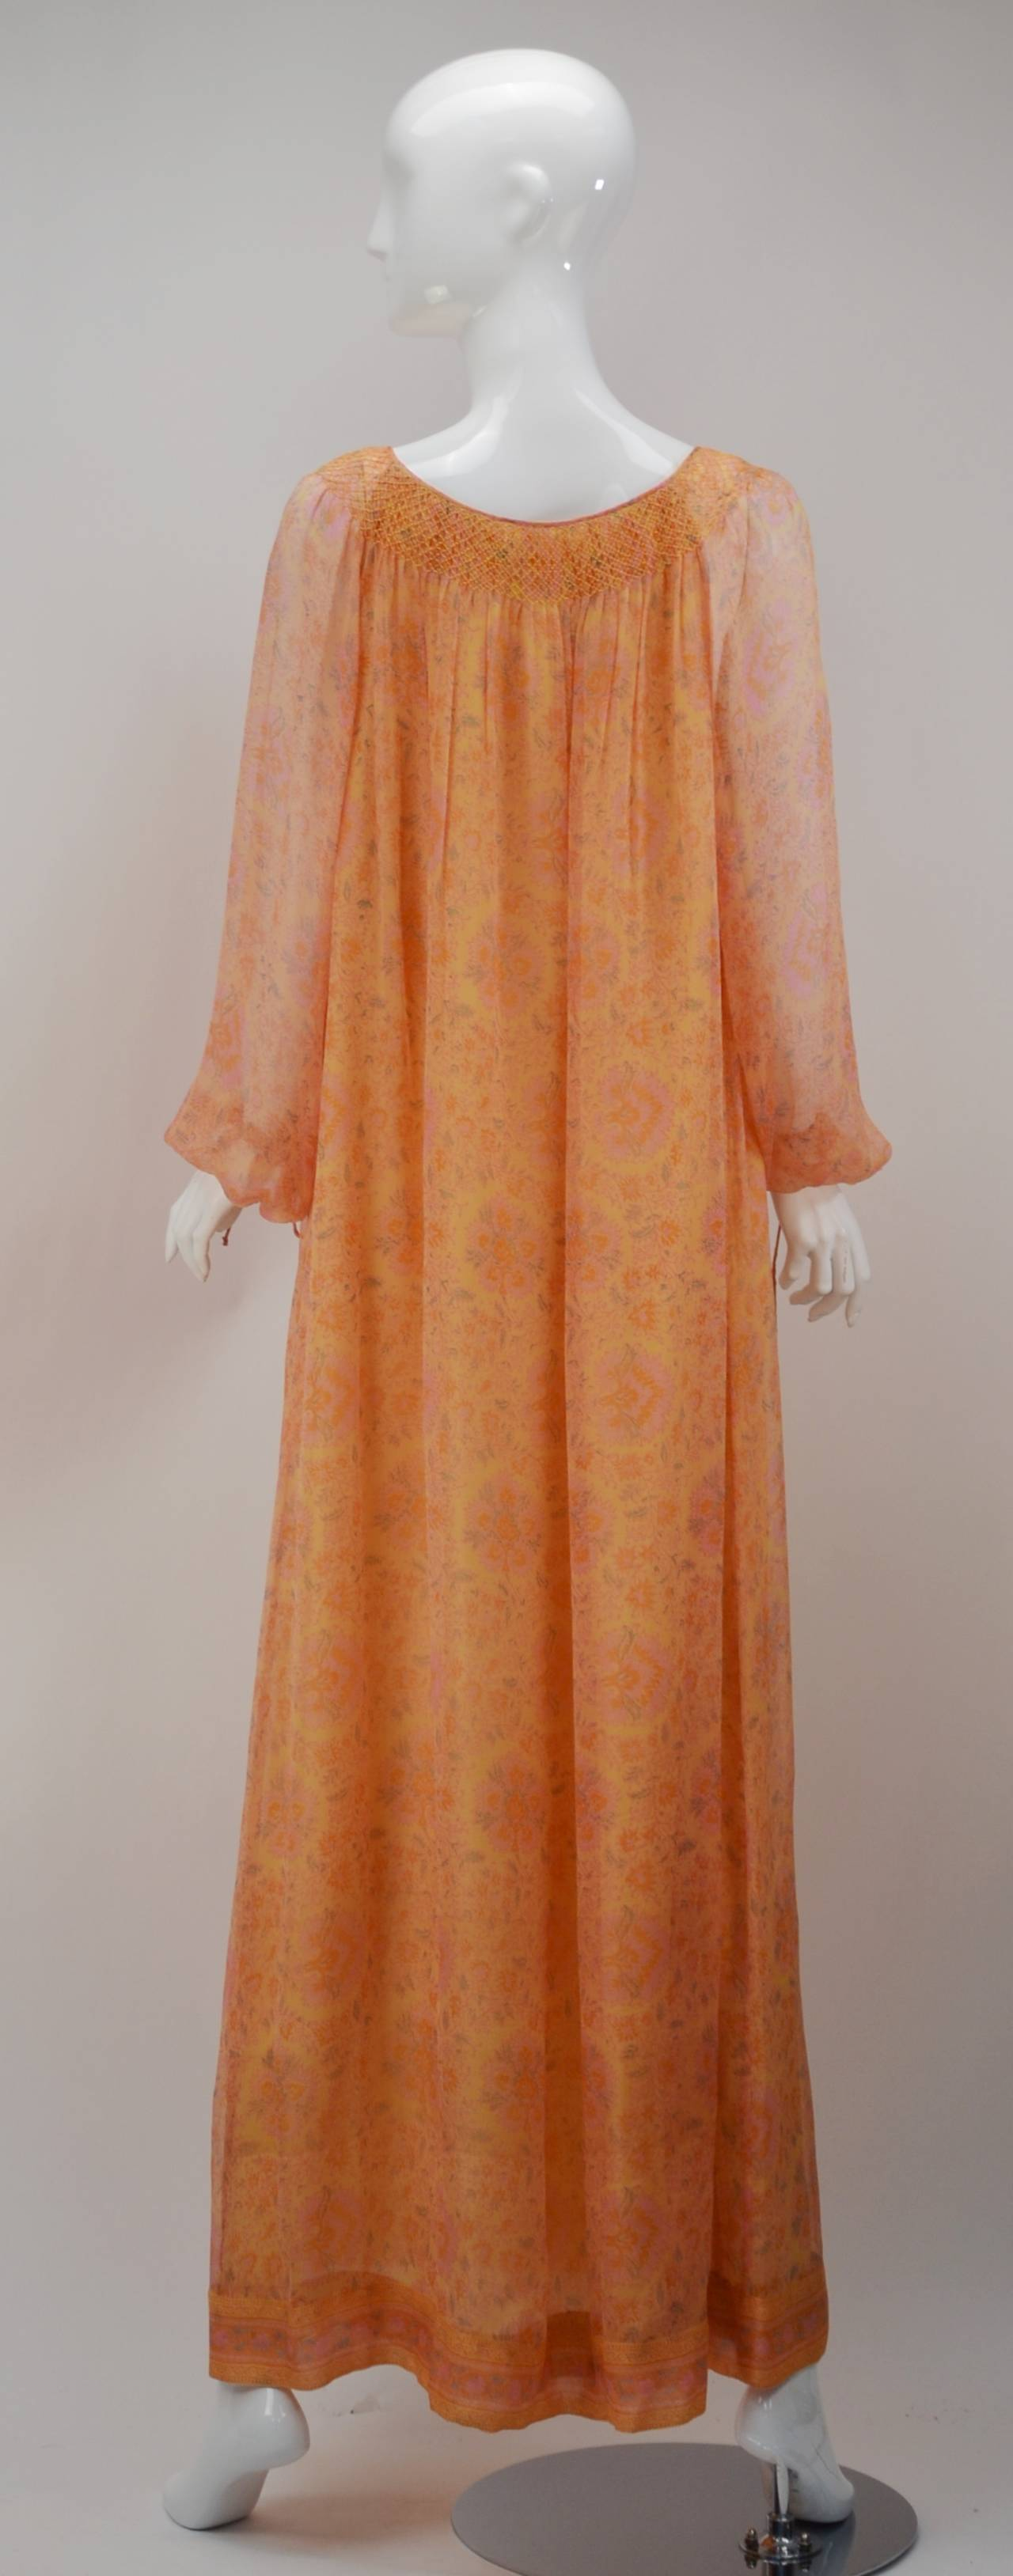 Vintage Treacy Lowe Spring colored, orange and peach silk chiffon peasant dress with beautiful floral print with small and light green leaves. Known for using tissue silk gauze with her custom designed prints, this piece serves as a perfect